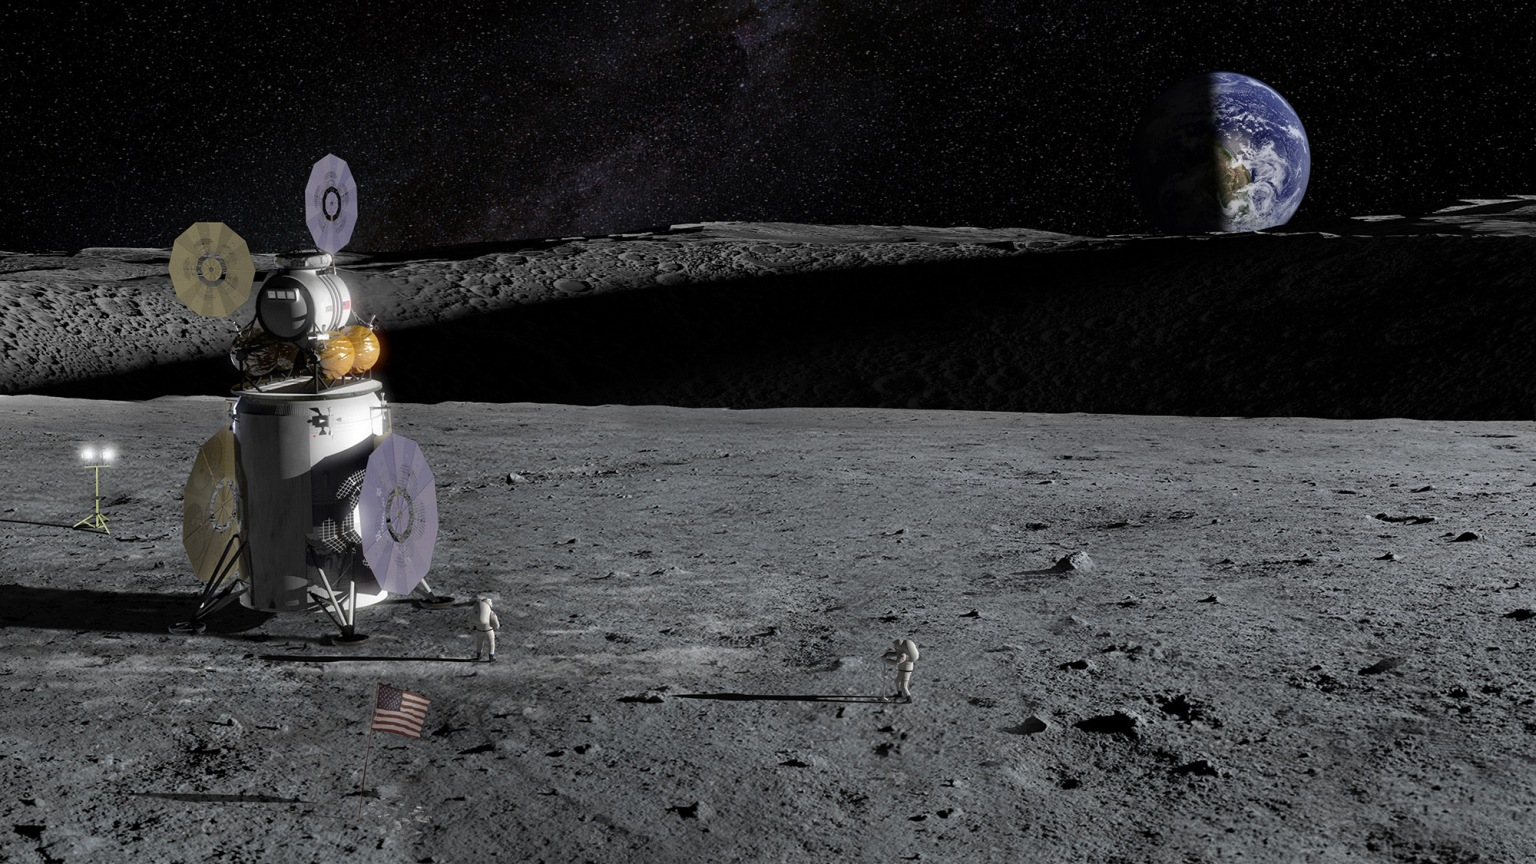 Trump seeks billions more for NASA to get US astronauts on the moon by 2024